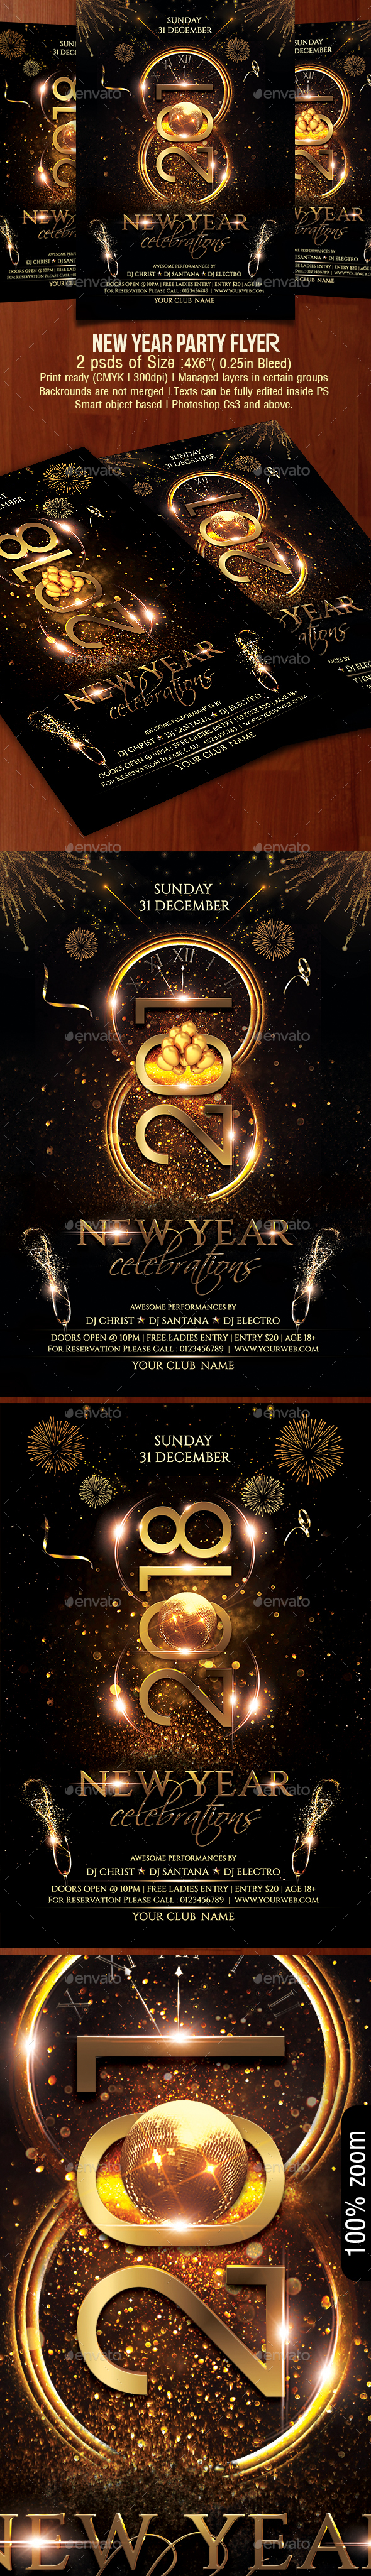 GraphicRiver New Year Party Flyer 20899426